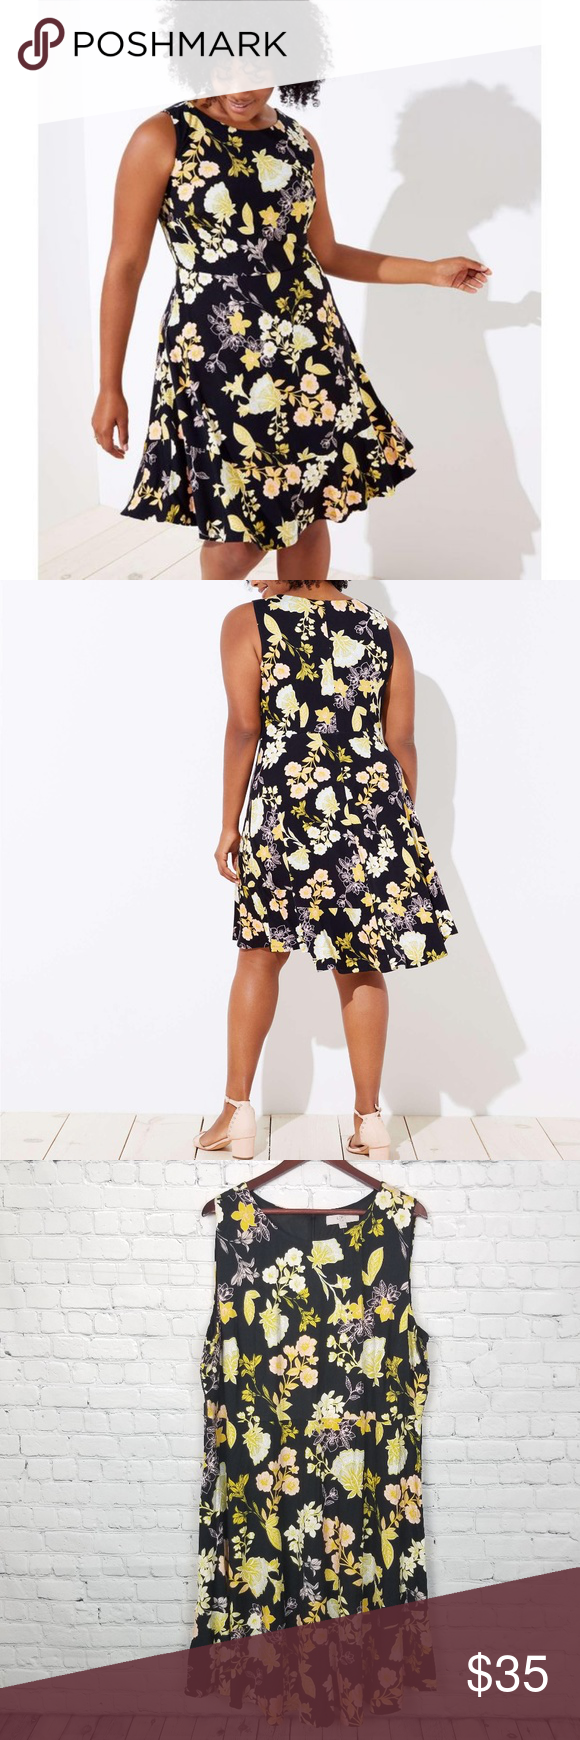 8b06a2f04 LOFT Womens Yellow Floral Flare Dress NWT New with tags, Women's size 24.  Beautiful